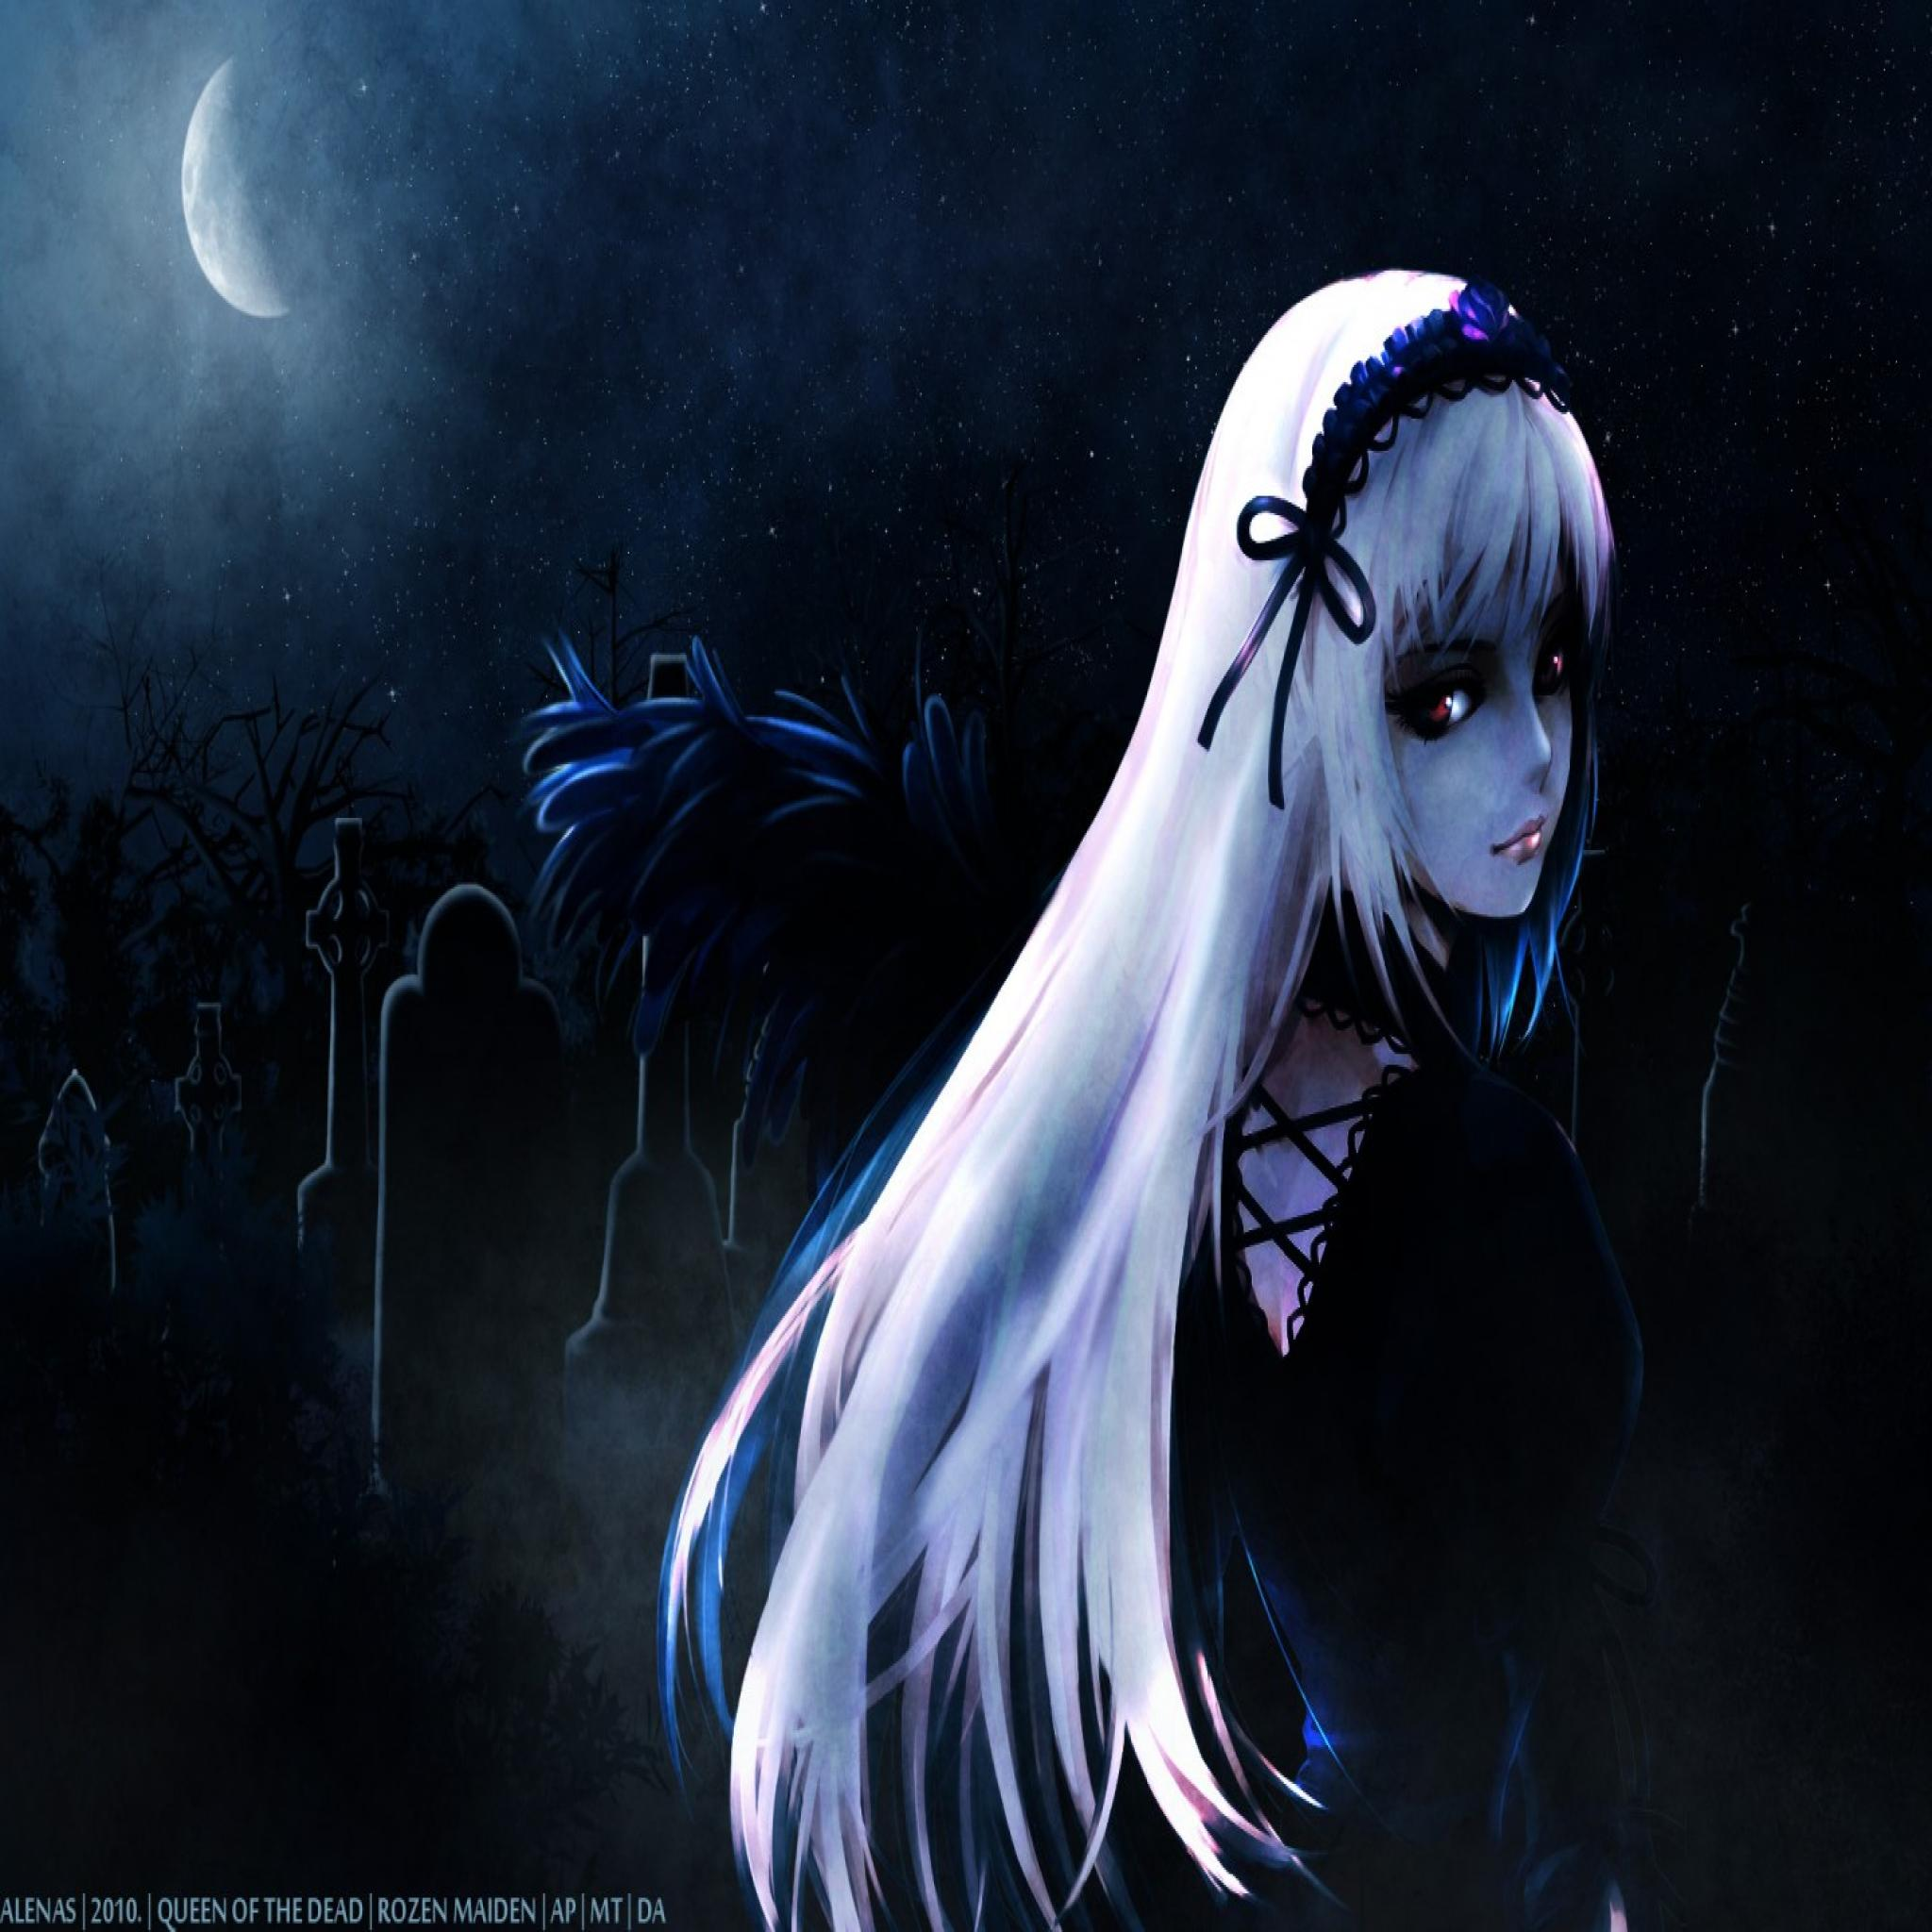 Dark anime wallpapers wallpapersafari - Dark anime background ...